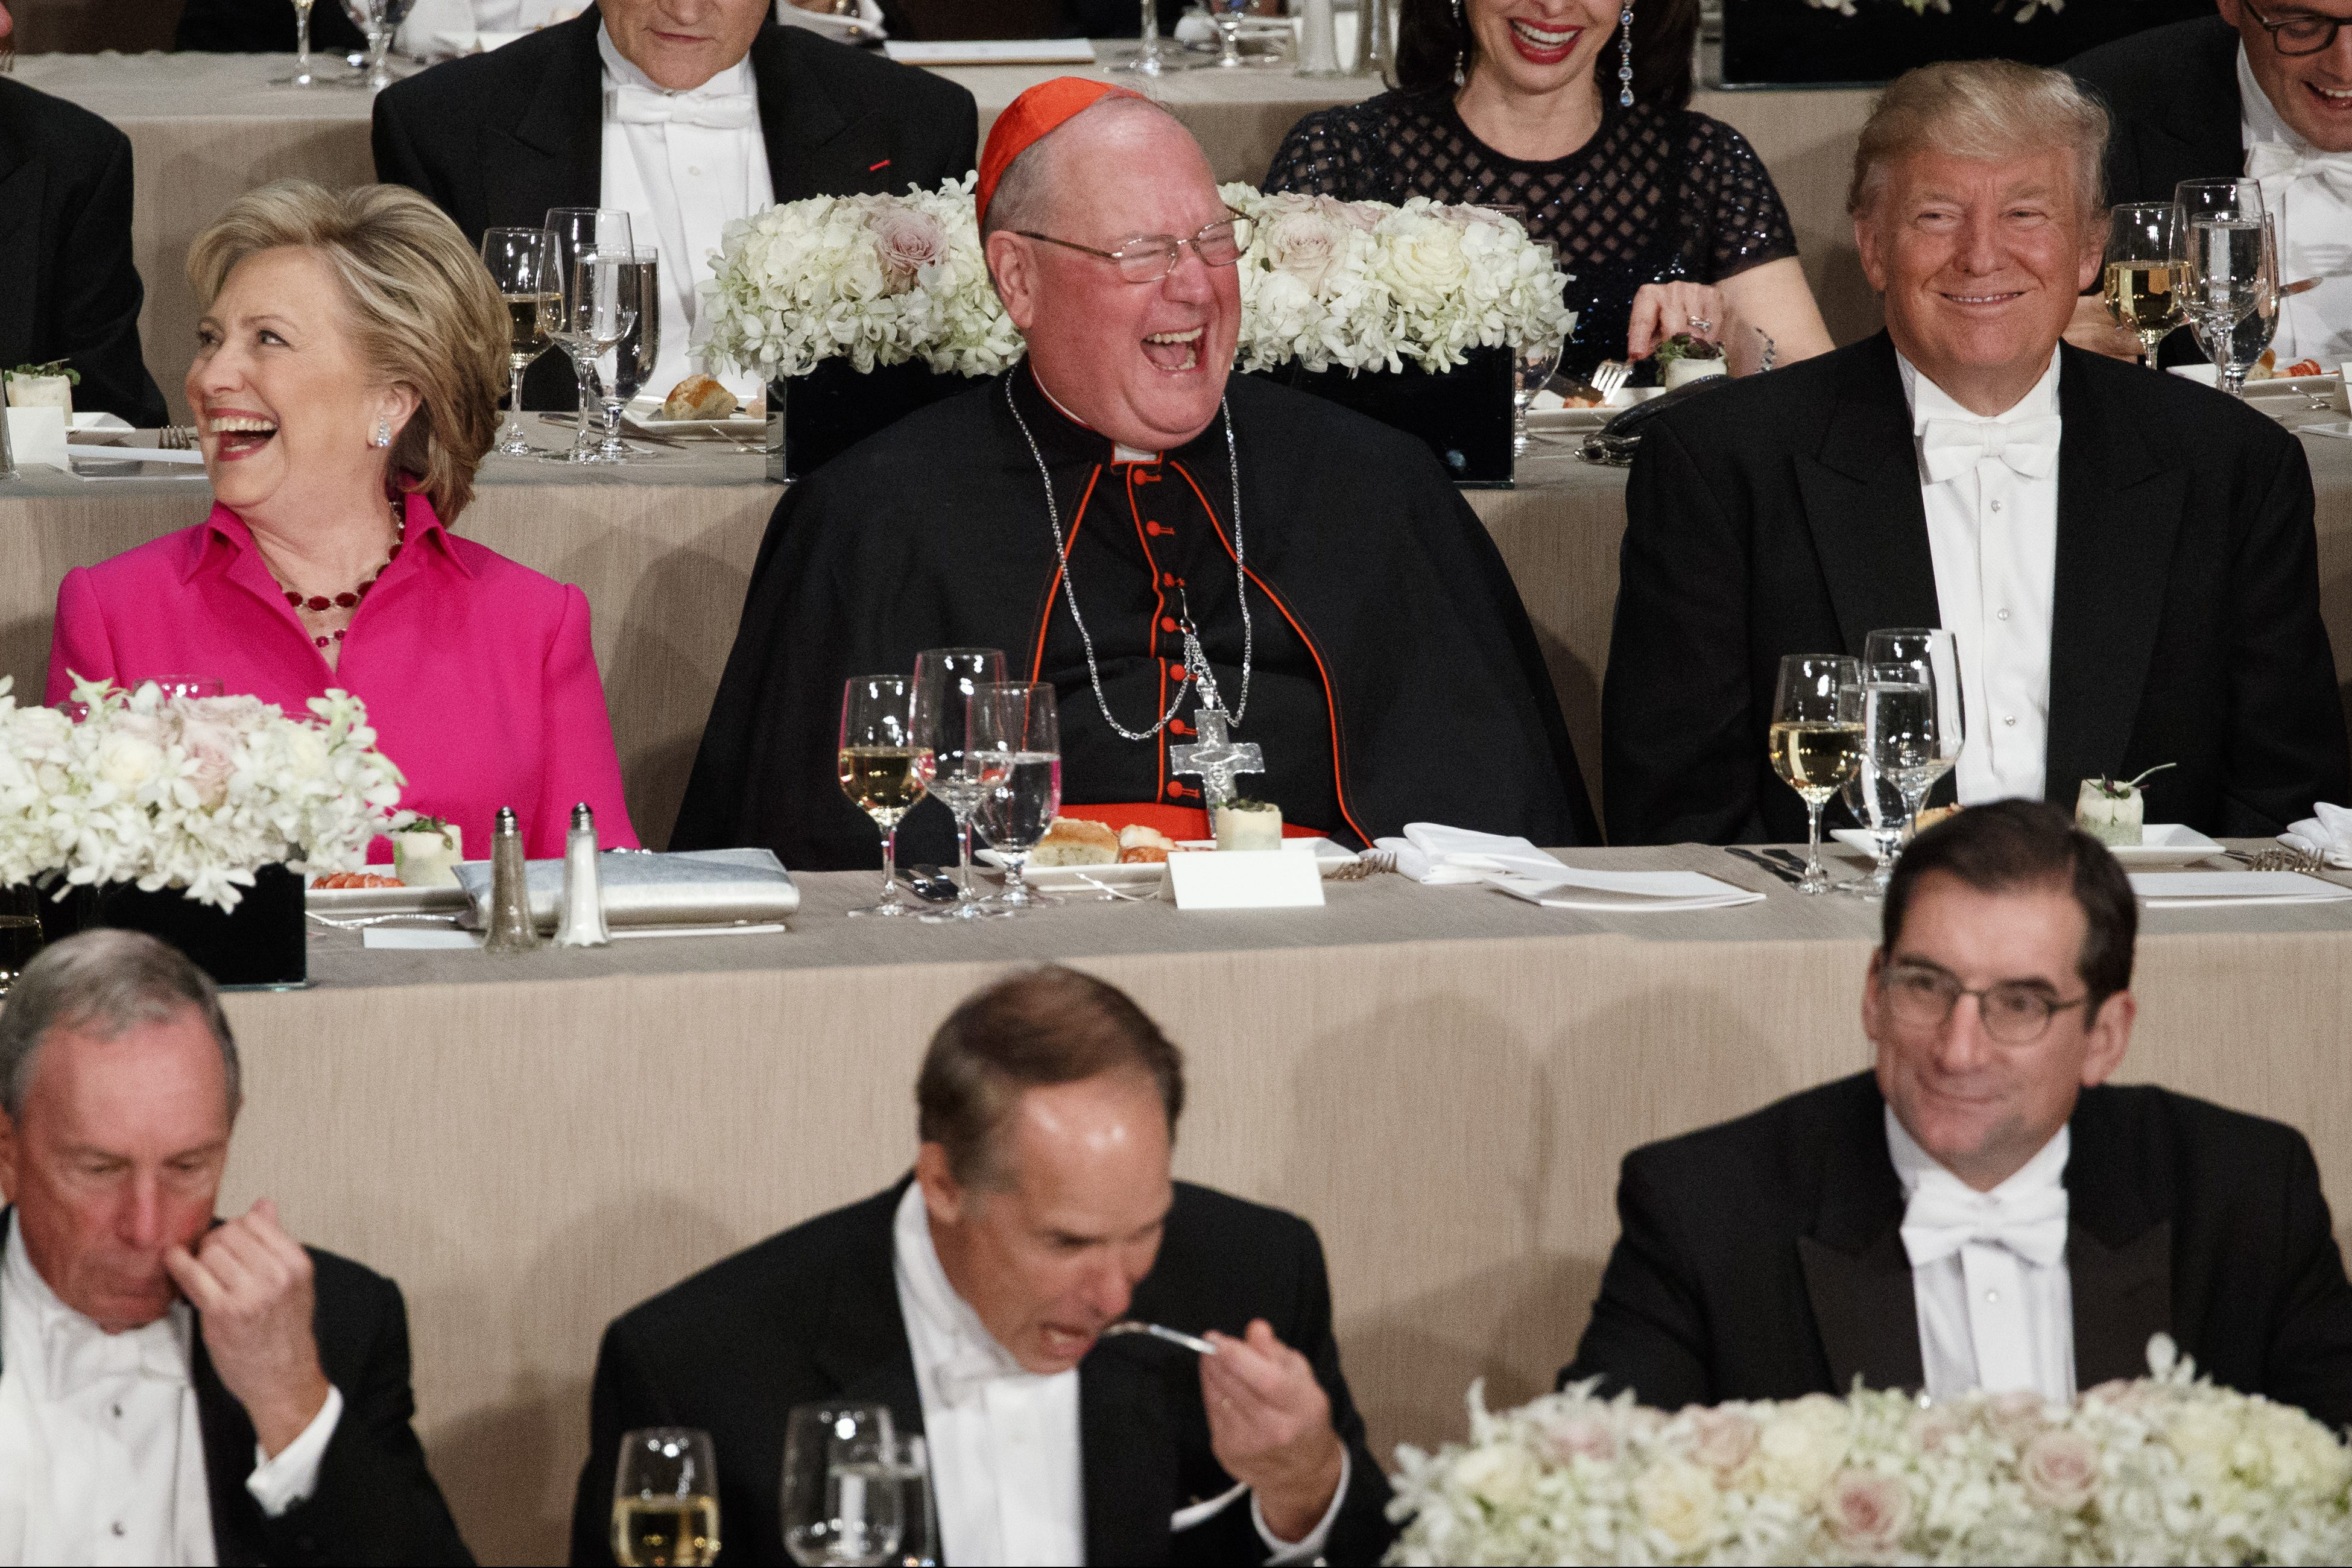 Republican presidential candidate Donald Trump, right, laughs at a joke with Cardinal Timothy Dolan, center, and Democratic presidential candidate Hillary Clinton during the Alfred E. Smith Memorial Foundation dinner, Thursday, Oct. 20, 2016, in New York.